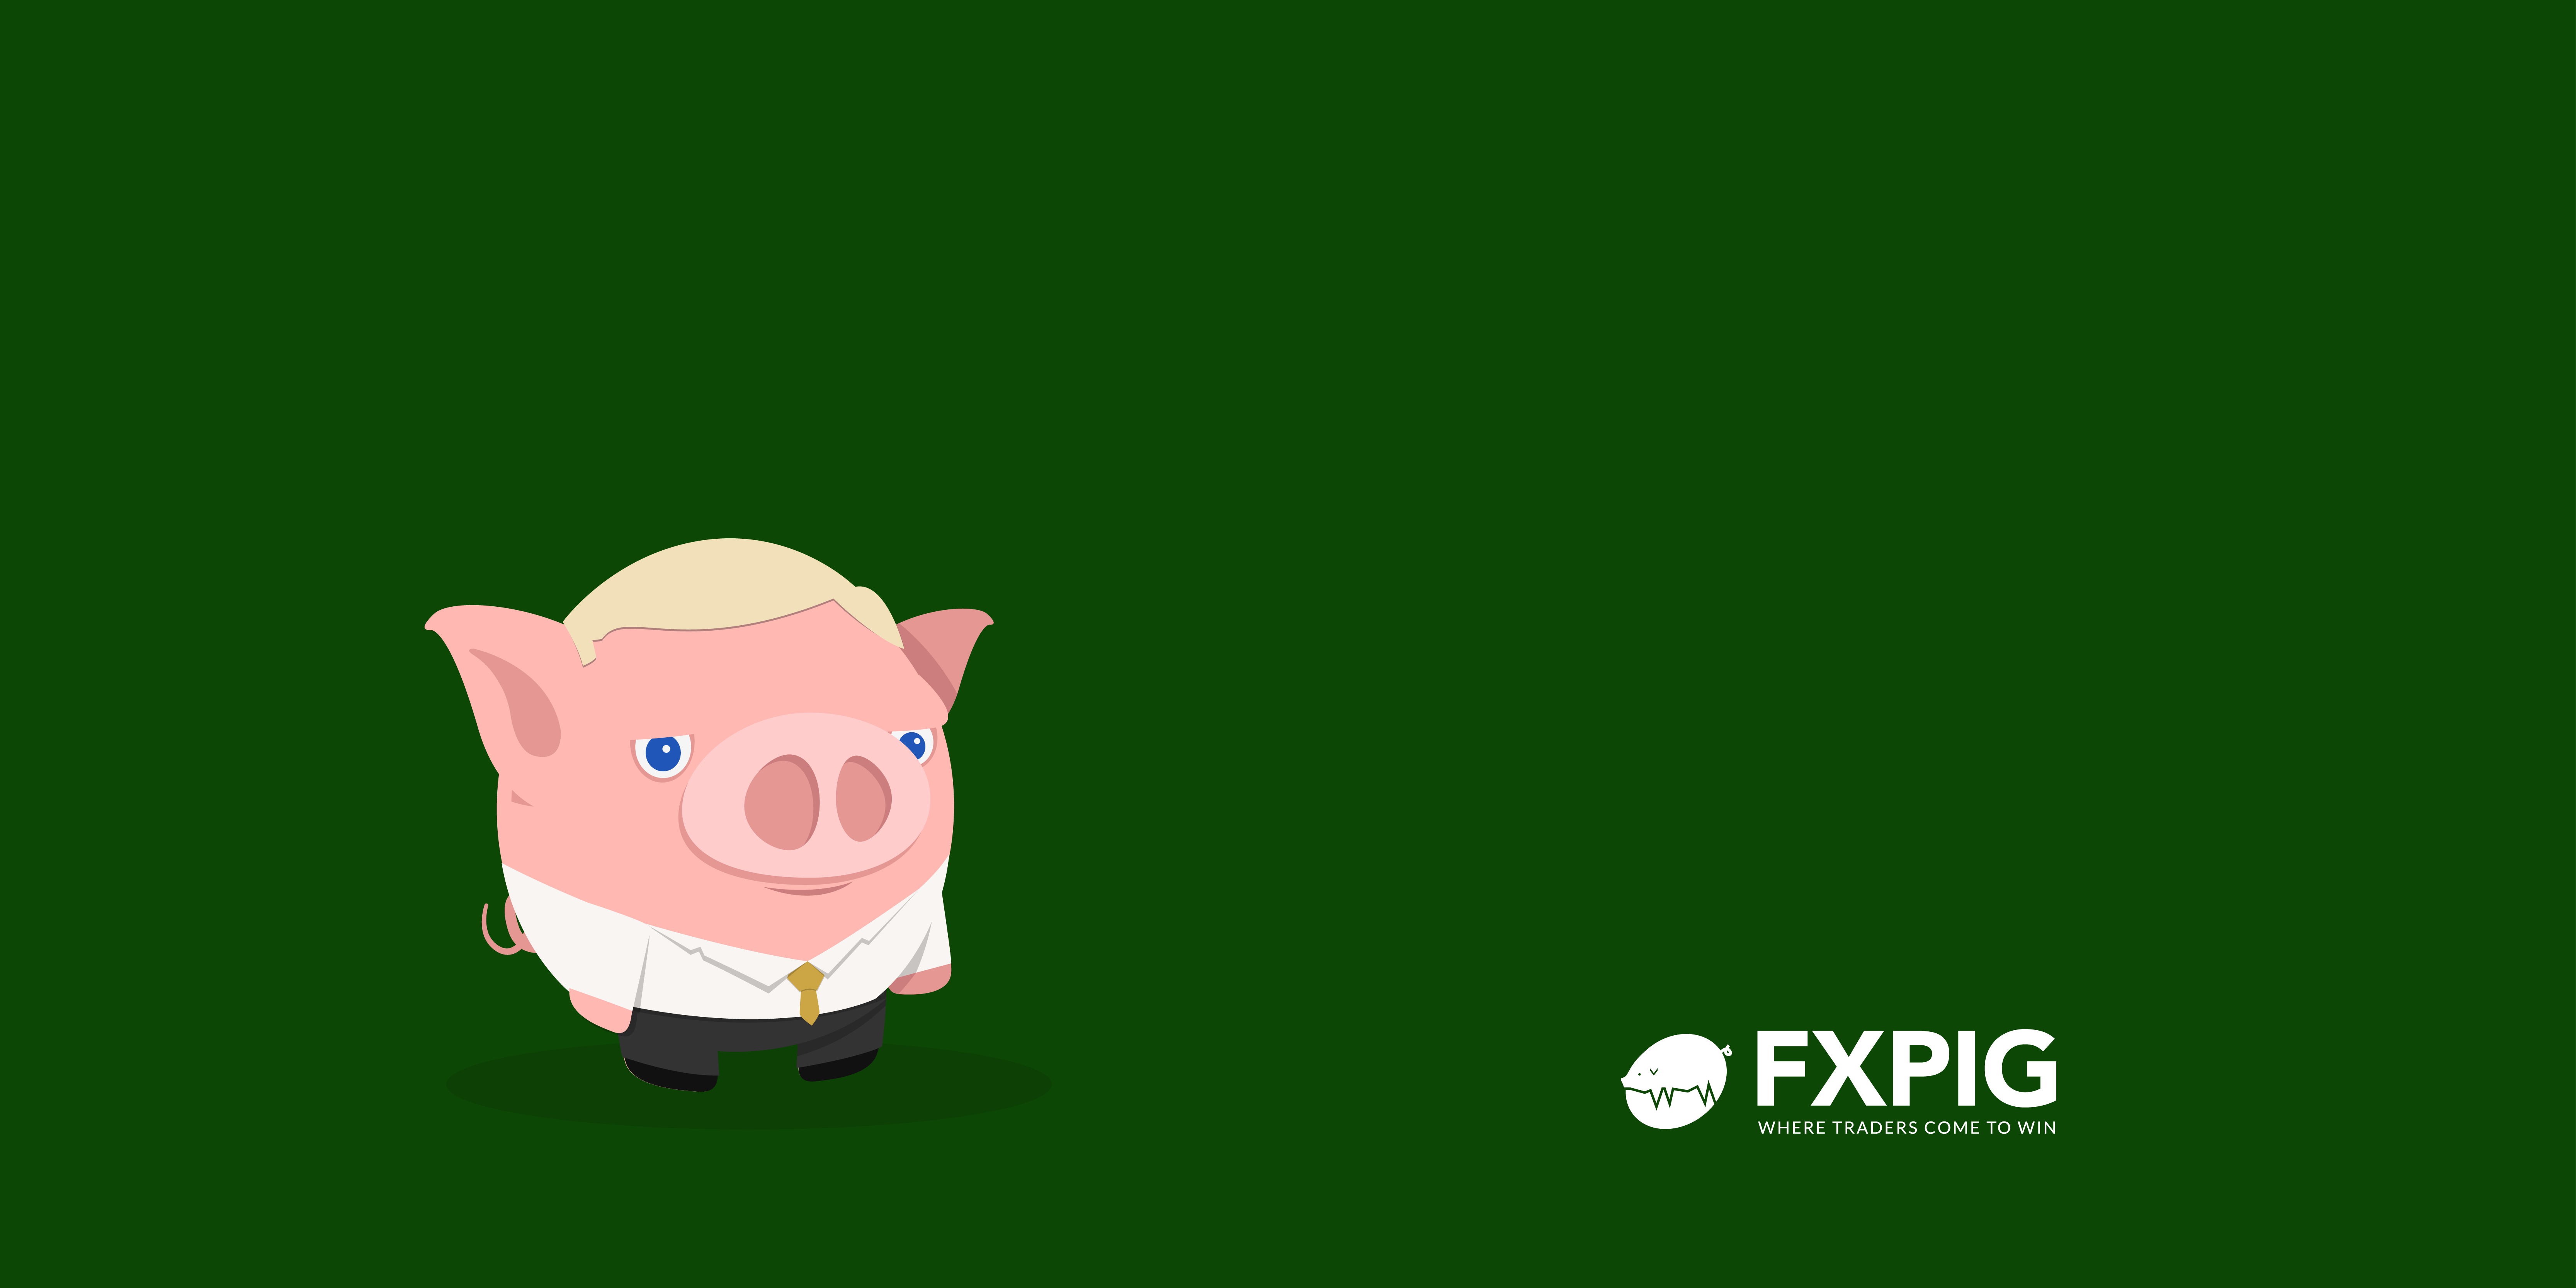 FOREX_trading-quote0207_FXPIG